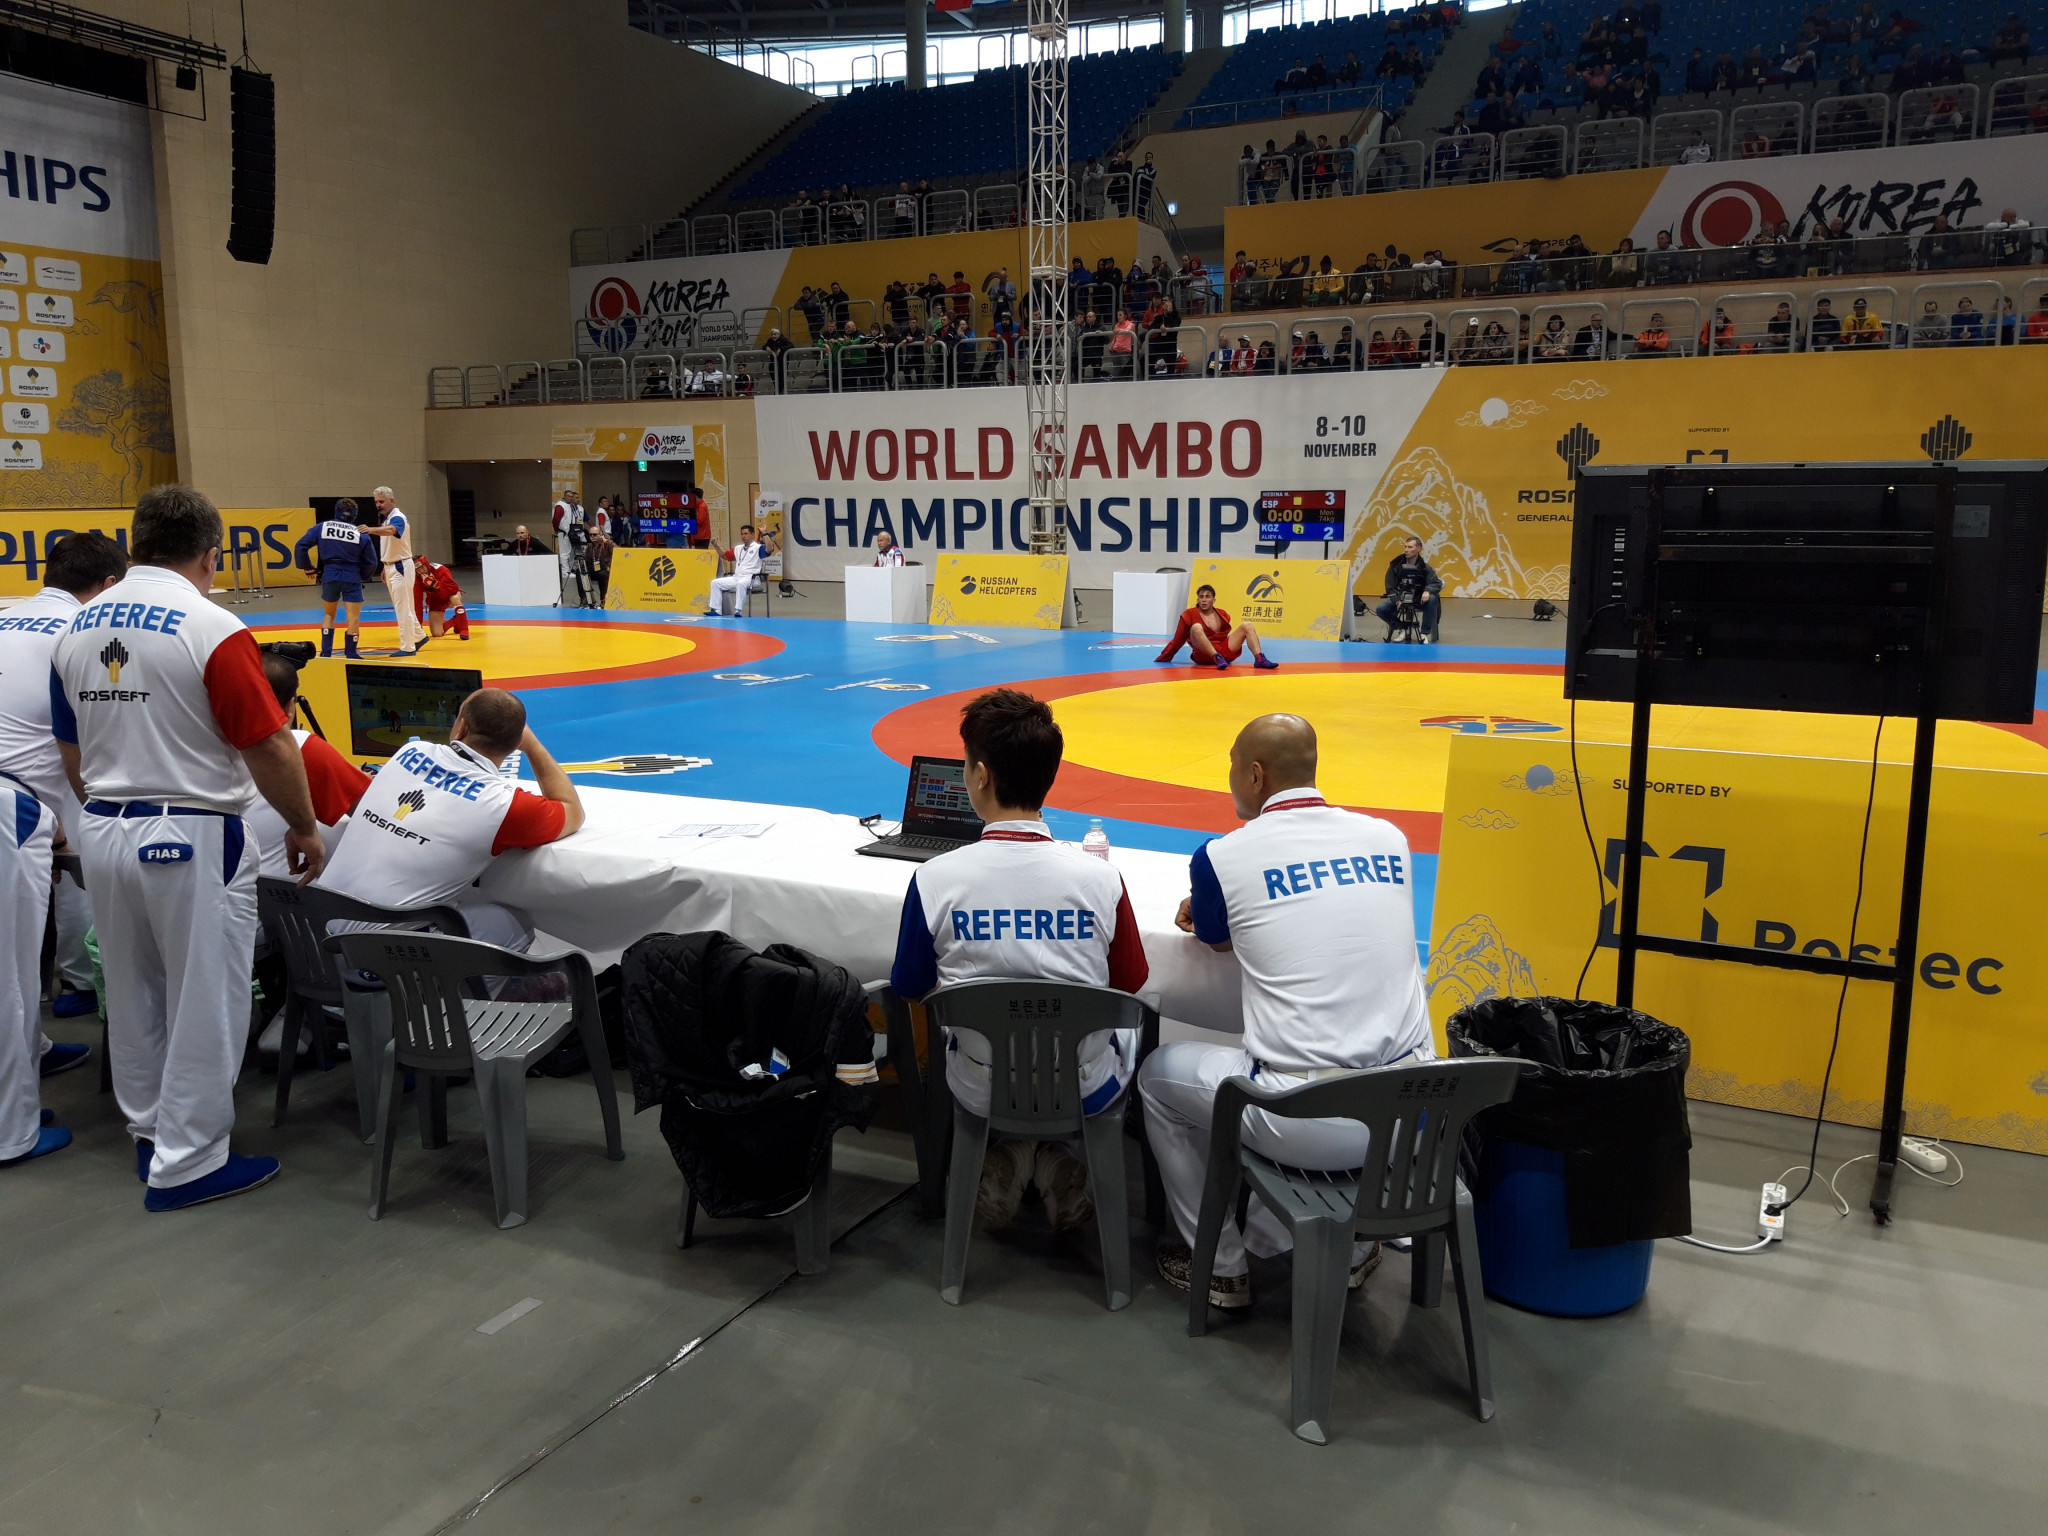 Men's 74kg top seed Nikolas Medina of Spain awaits a refeering call in his first round clash ©ITG